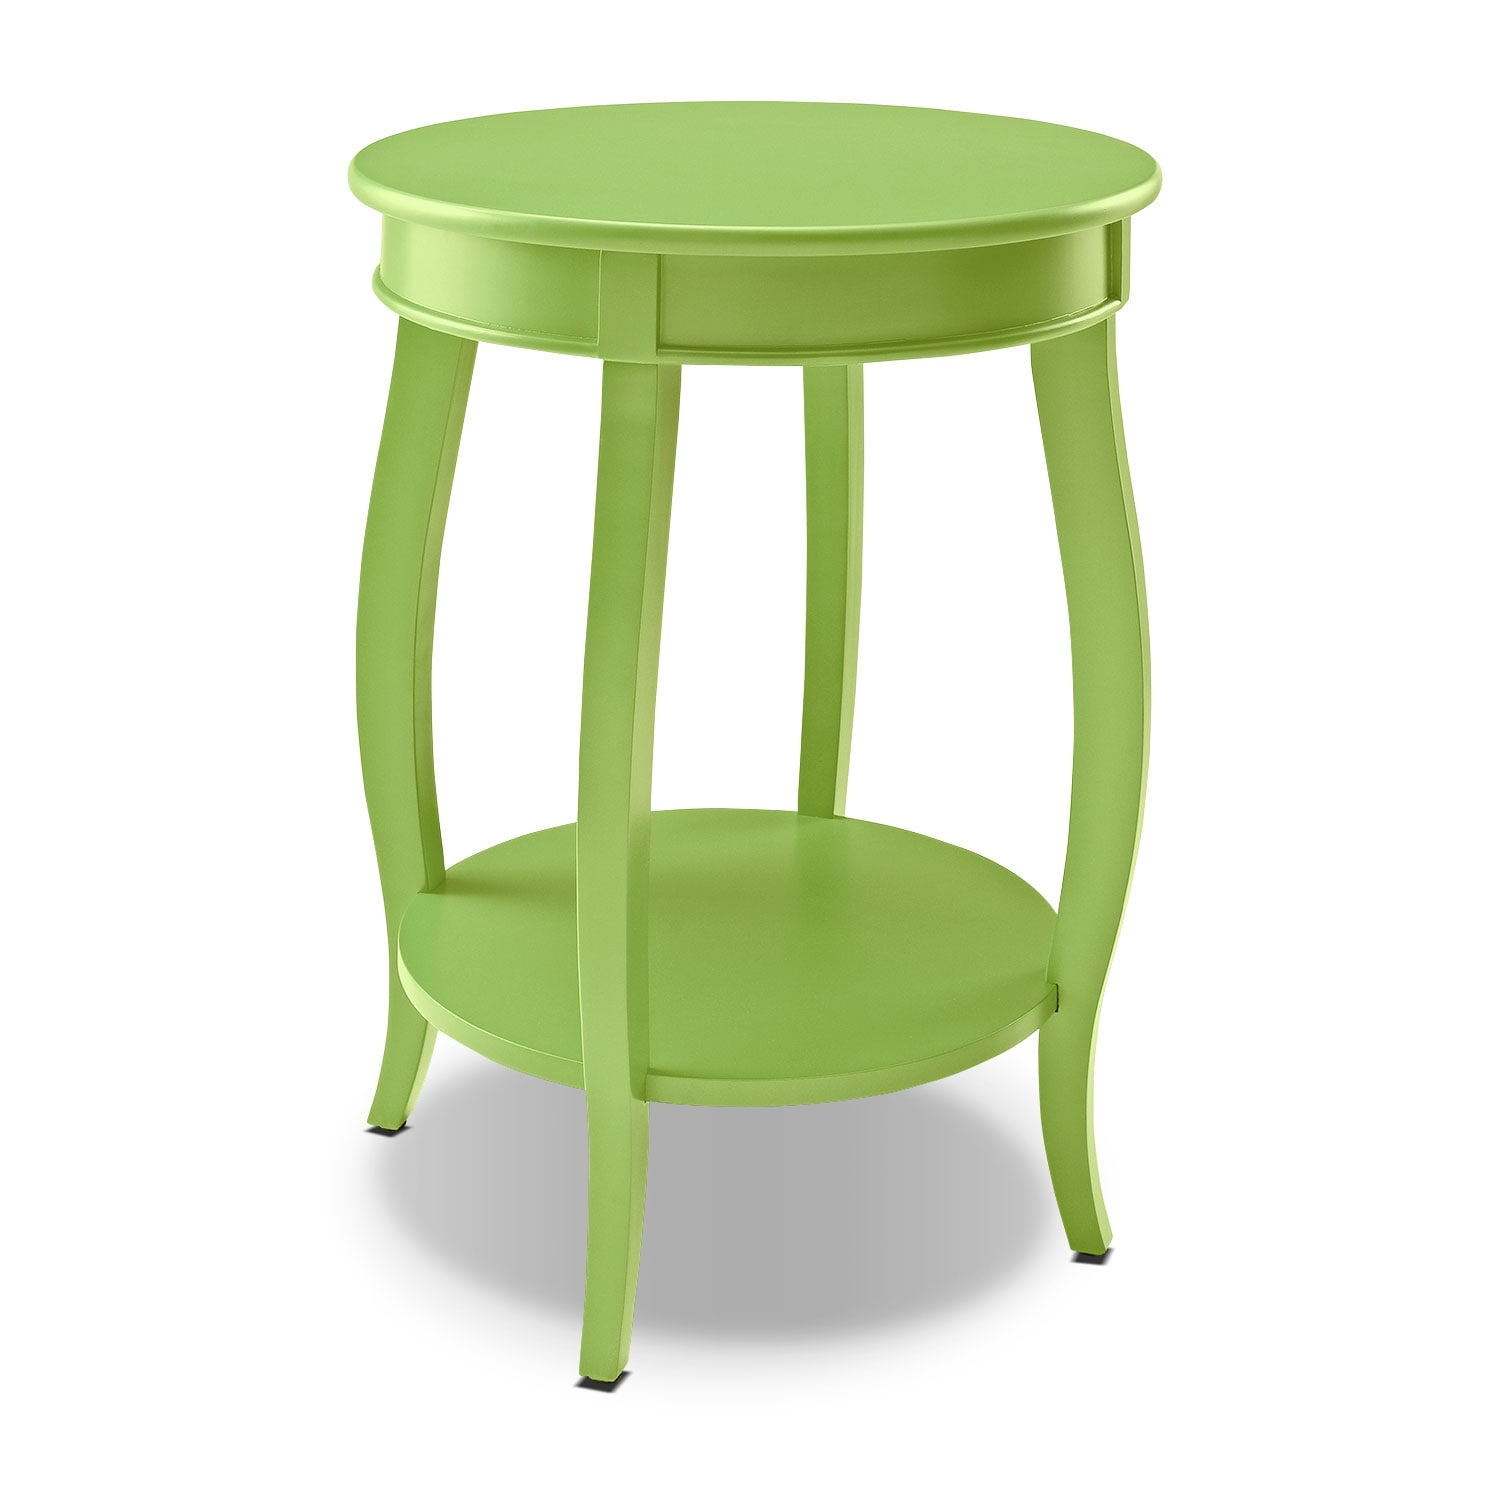 Sydney Accent Table - Green